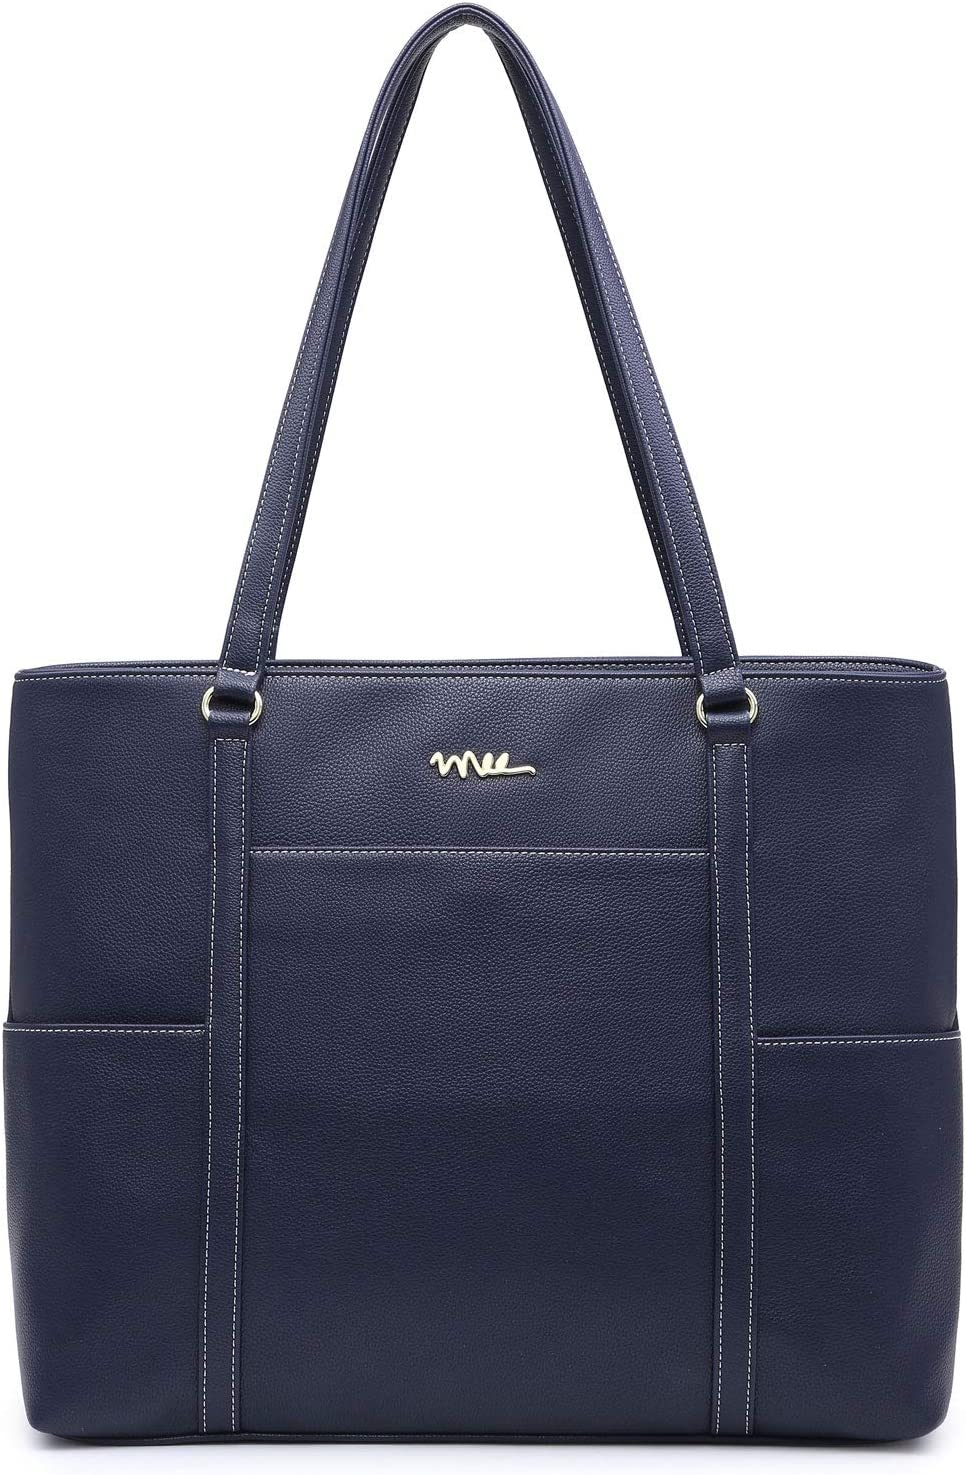 NNEE Classic Laptop Leather Tote Bag for 15 15.6 inch Notebook Computers Travel Carrying Bag with Smart Trolley Strap Design - Navy